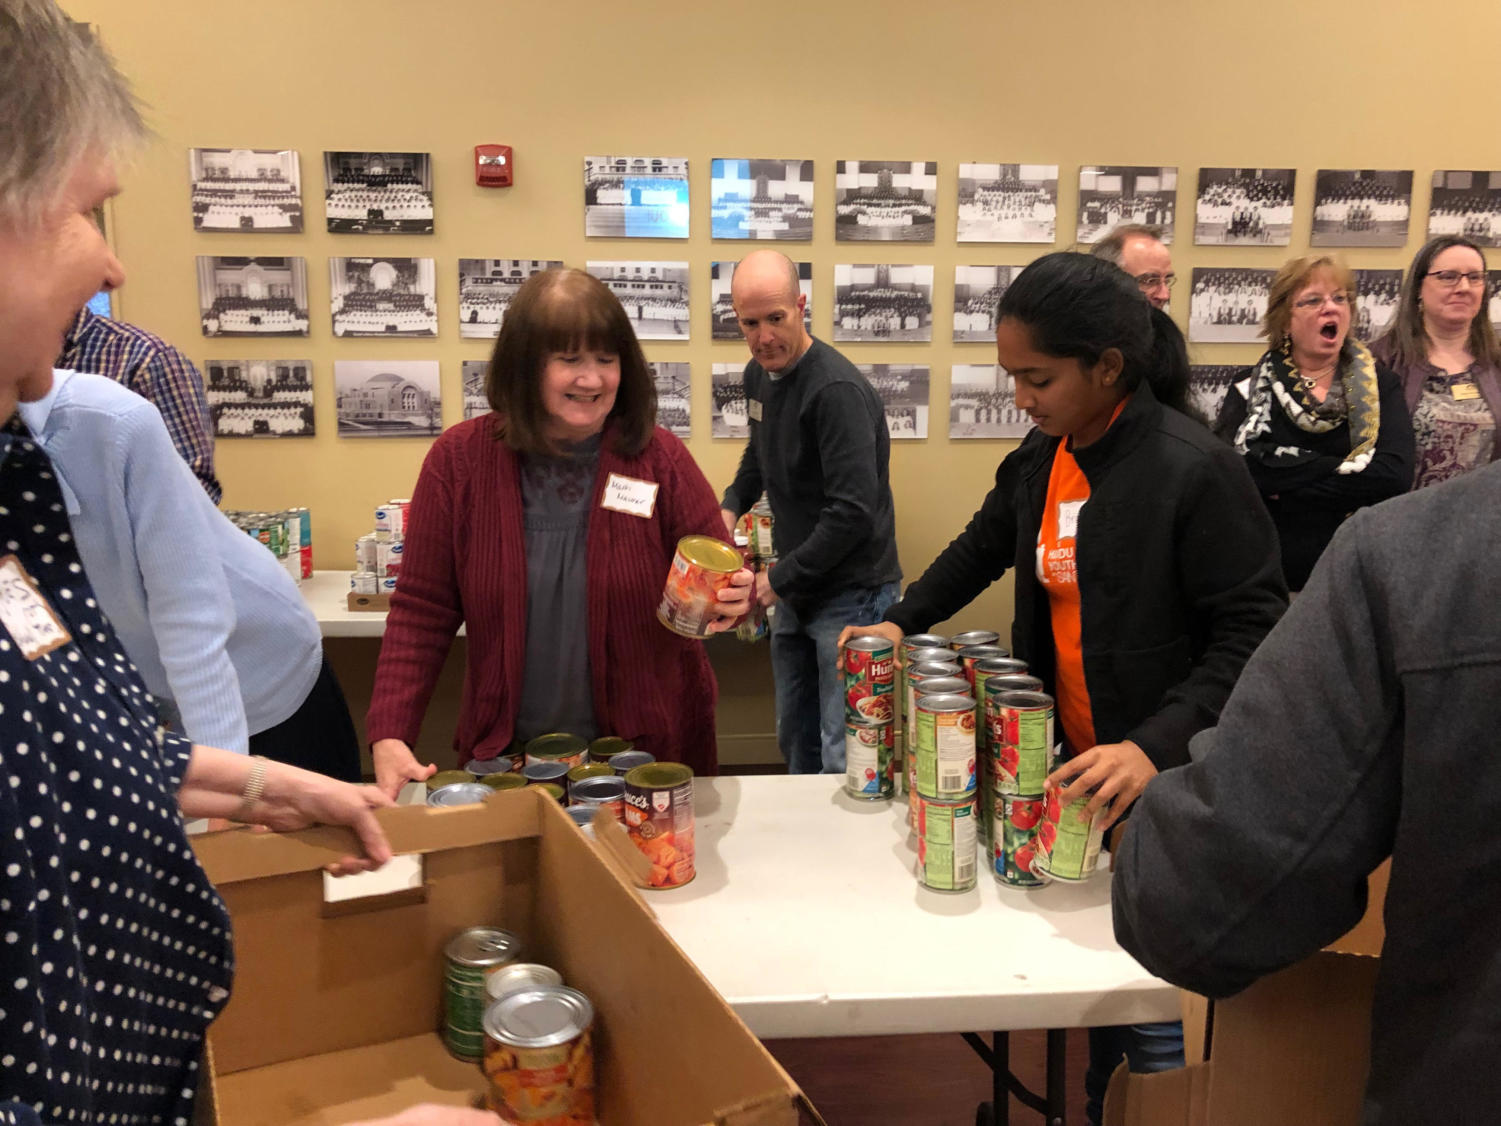 """Sorting through canned goods Nov. 19, freshman Brinda Ambal participates in the West County Interfaith Alliance Thanksgiving drive. Members from the Hindu, Islamic and Jewish temples came together alongside Catholic and Christian church members to better understand each other's faith and provide canned food for the Parkway Food Pantry. """"In a world where there is so much religious conflict, it is really great to see people come together,"""" Ambal said."""